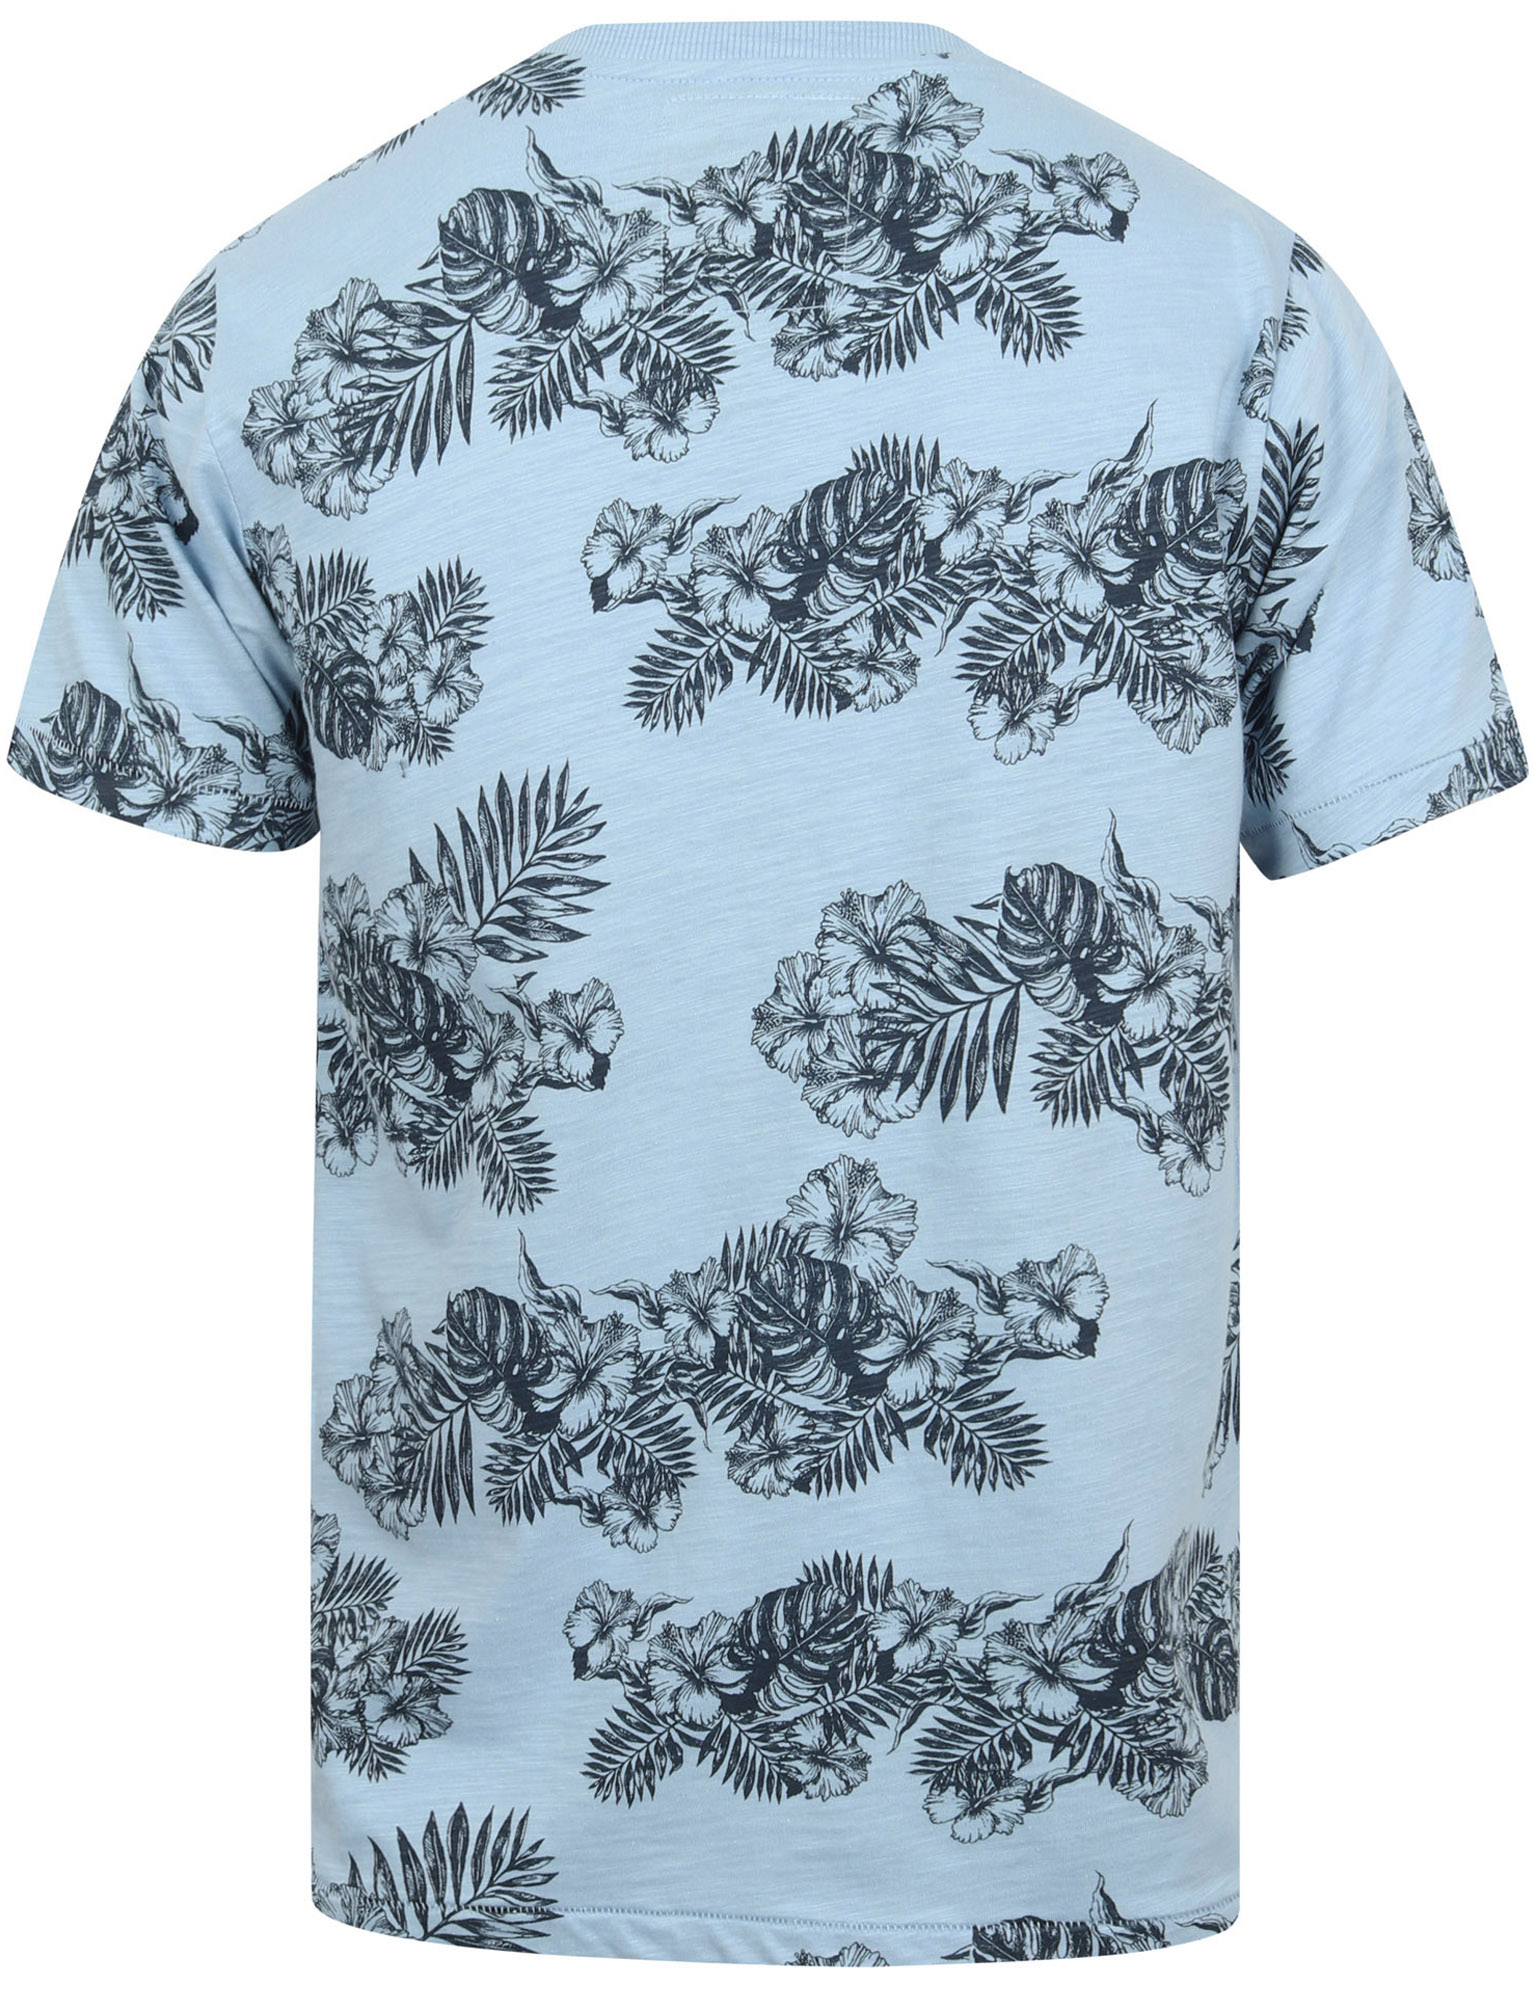 Tokyo-Laundry-Tropical-Print-Crew-Neck-T-Shirt-Hawaiian-Floral-Summer-Holiday thumbnail 17